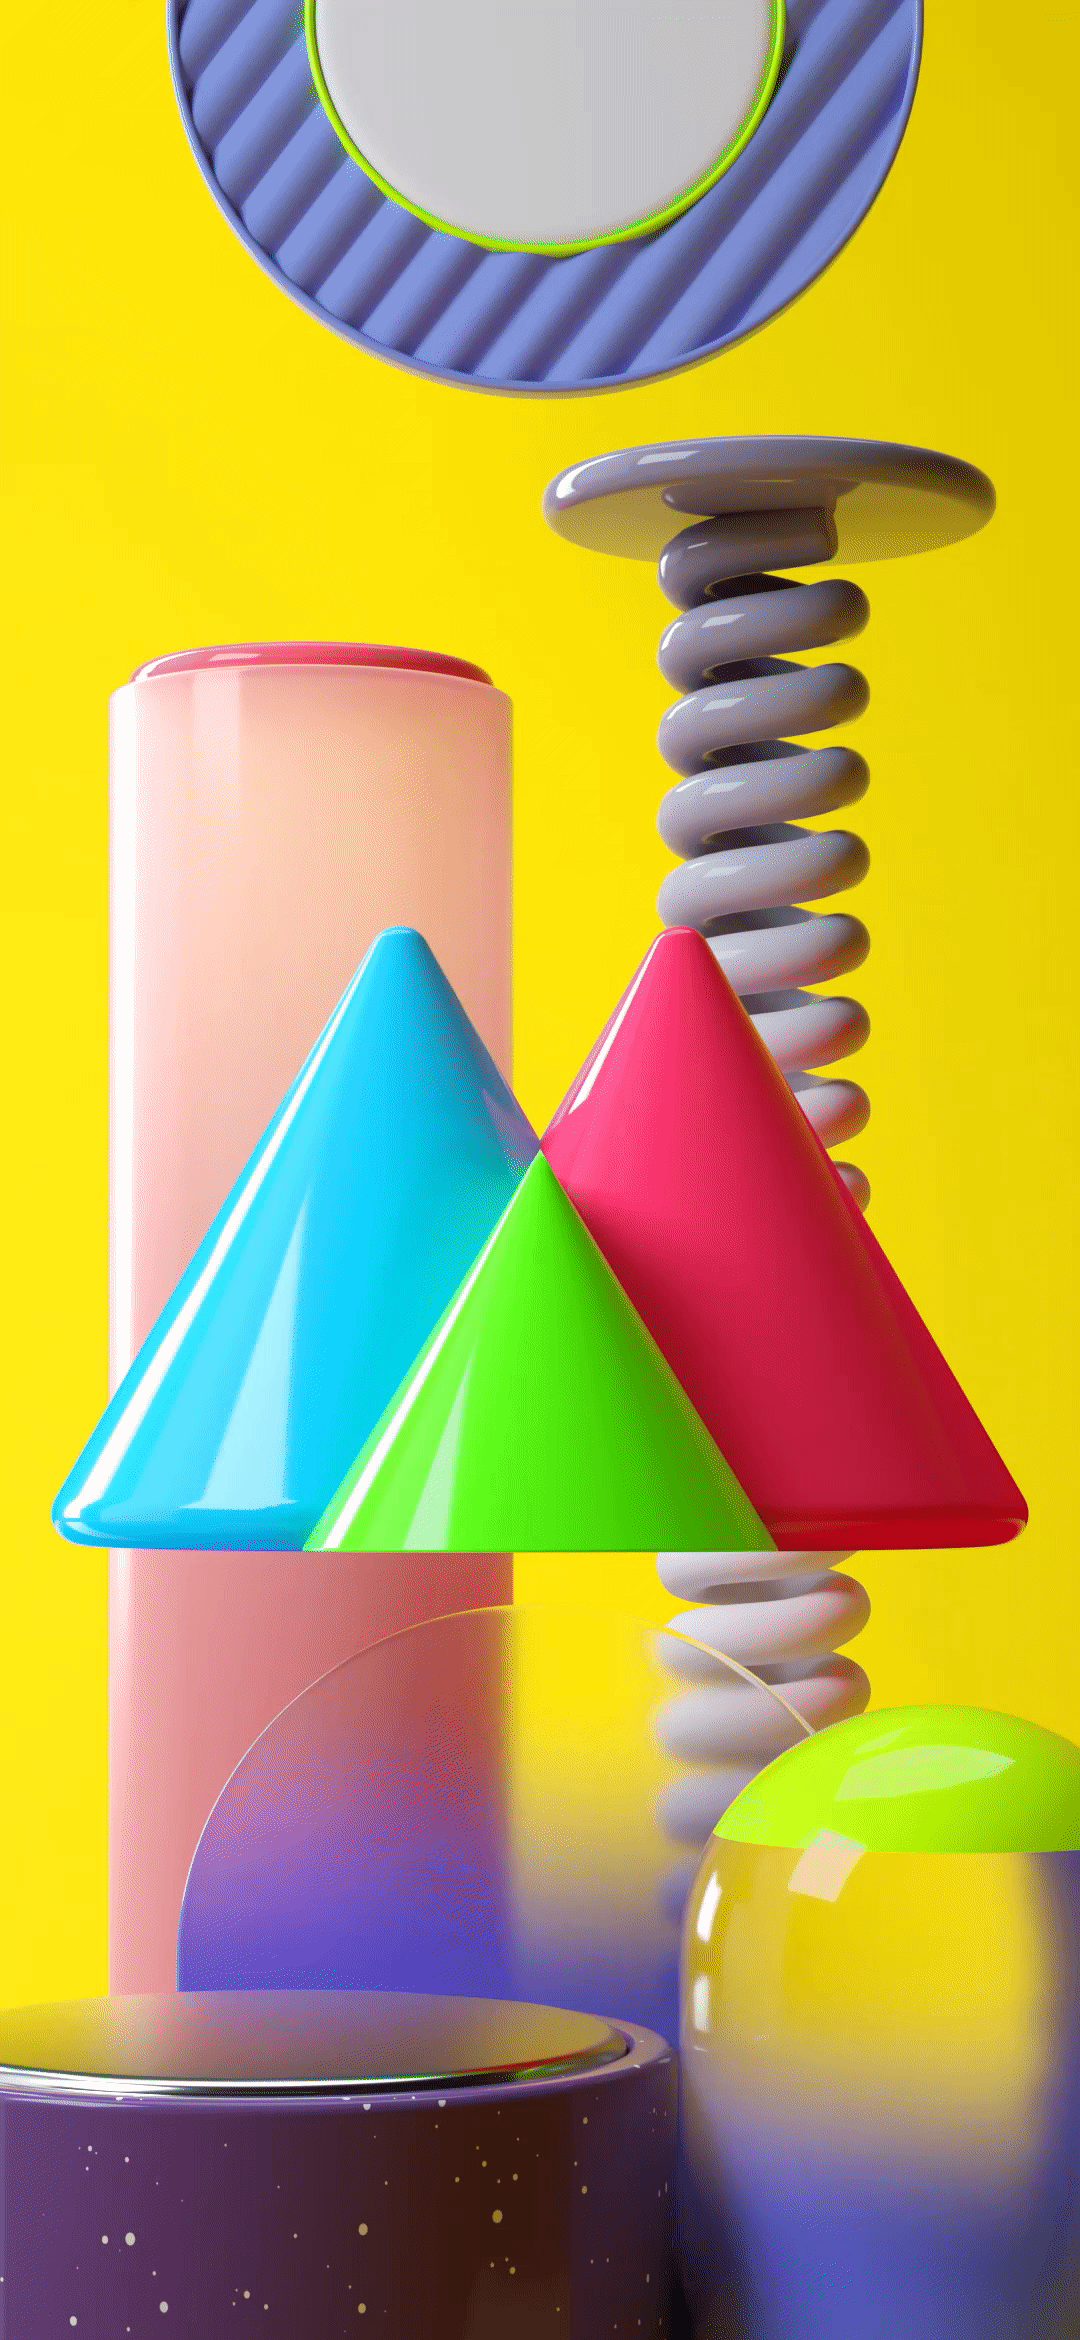 Samsung Galaxy M31 Wallpaper Ytechb Exclusive In 2020 Samsung Galaxy Wallpaper Android Samsung Galaxy Wallpaper Stock Wallpaper